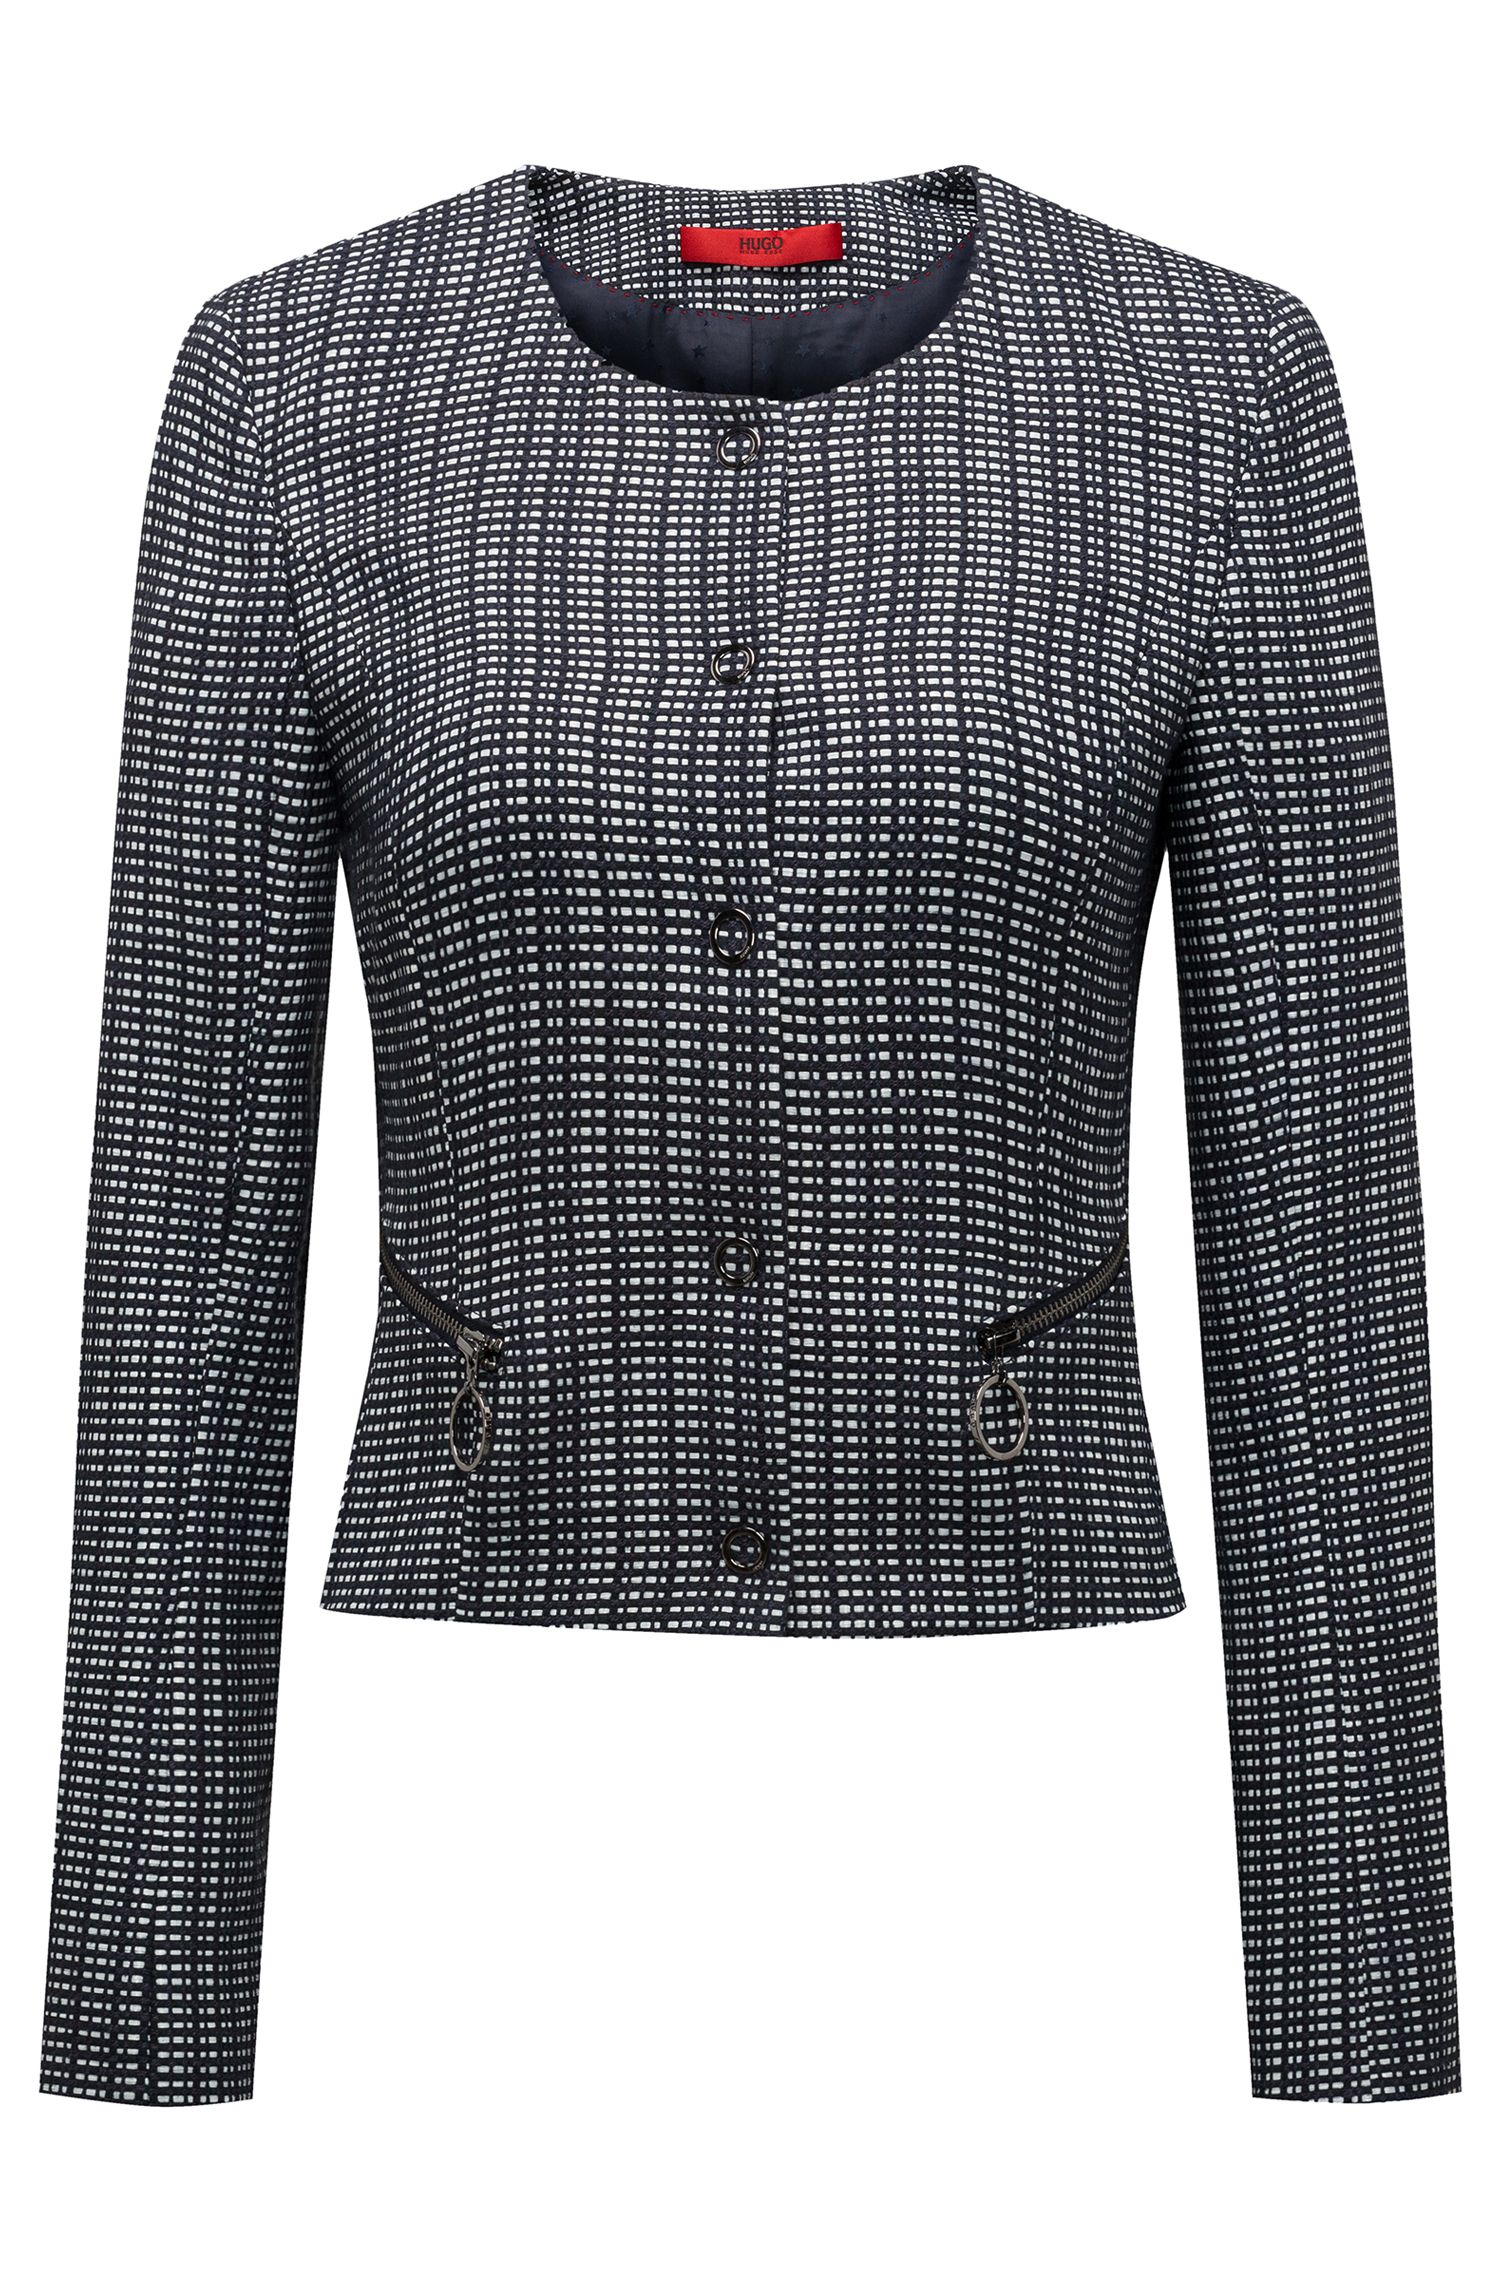 Slim-fit cropped jacket in a checked cotton blend